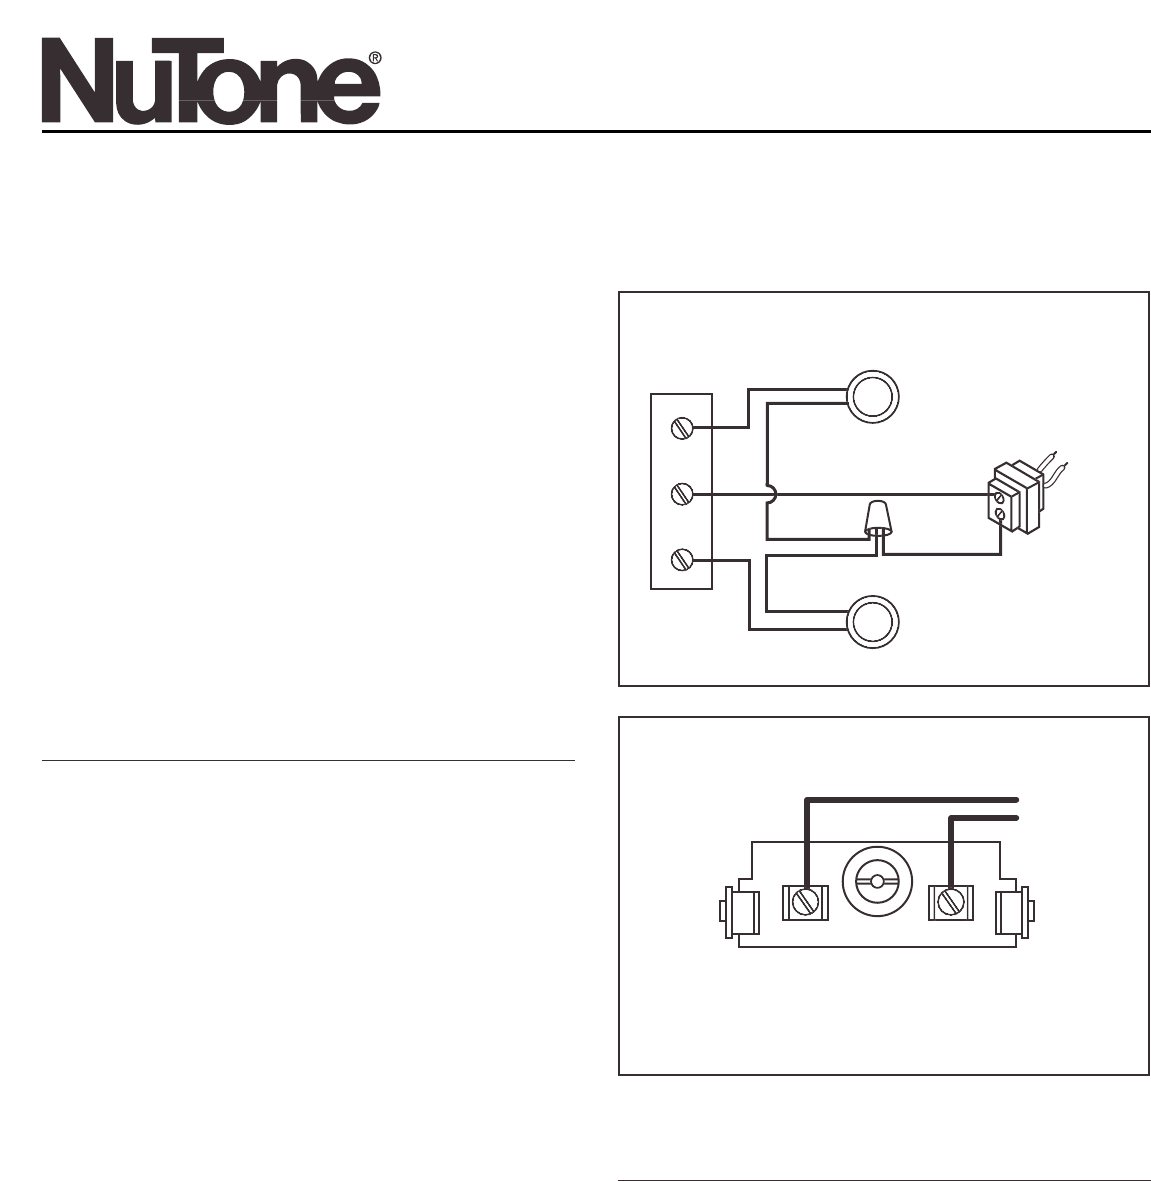 3913fb41 9112 40b1 be06 63c95f4b3cac bg1 nutone door lb 76 user guide manualsonline com wiring diagram for nutone intercom at n-0.co